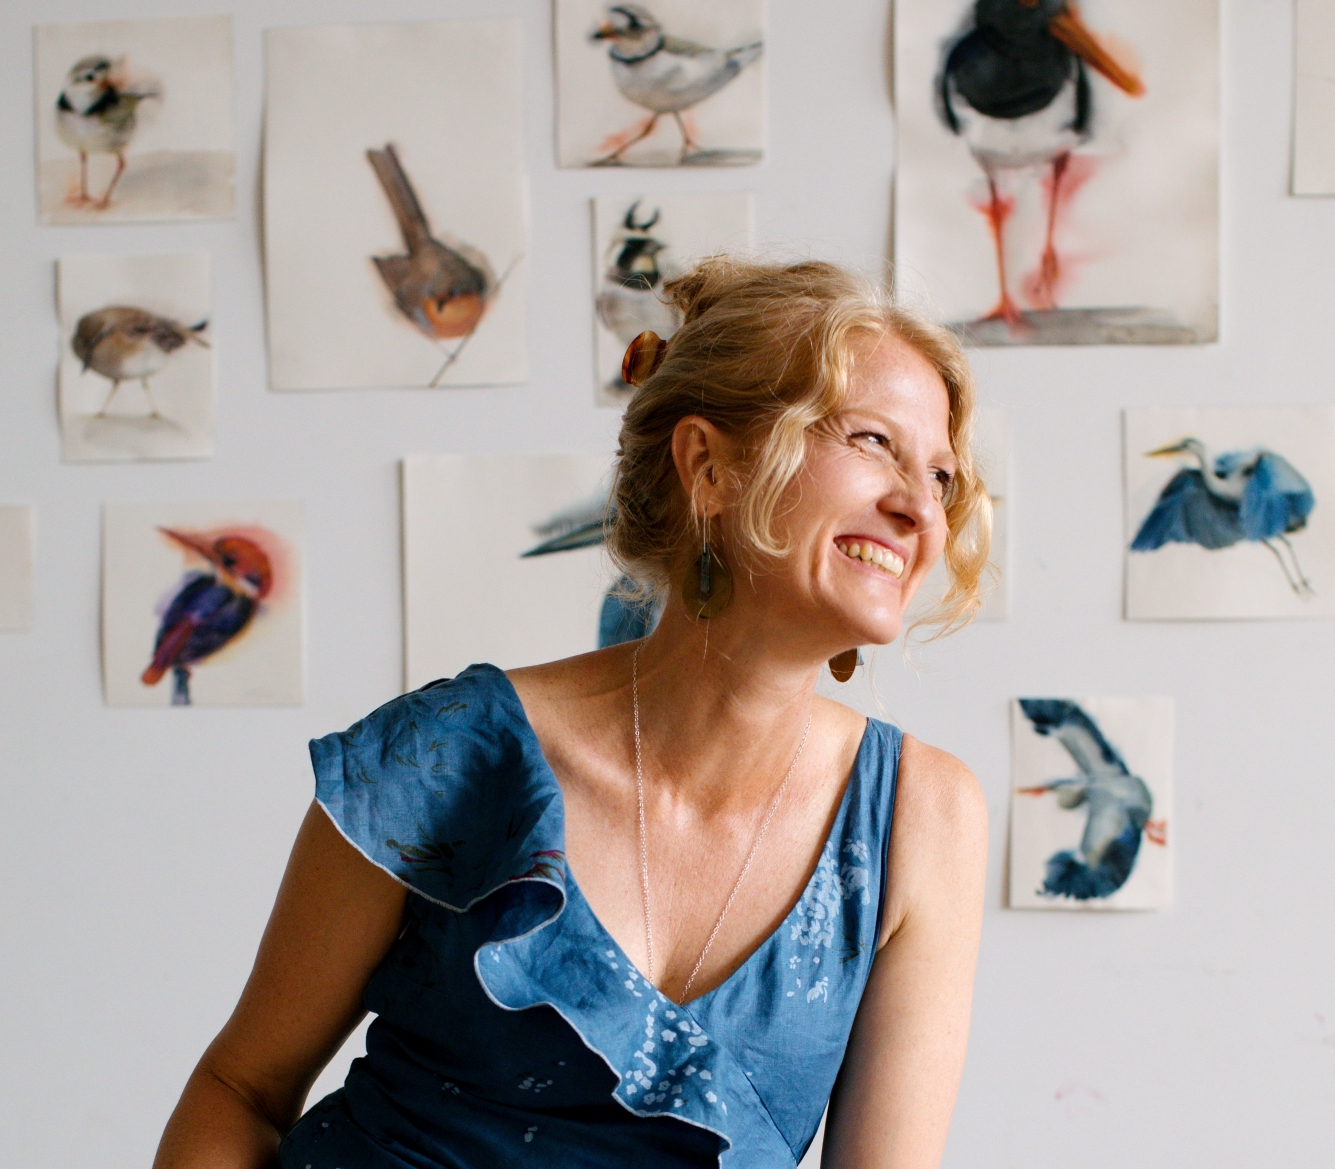 #213 Holly Wach: Celebrating the Creatures of Nature